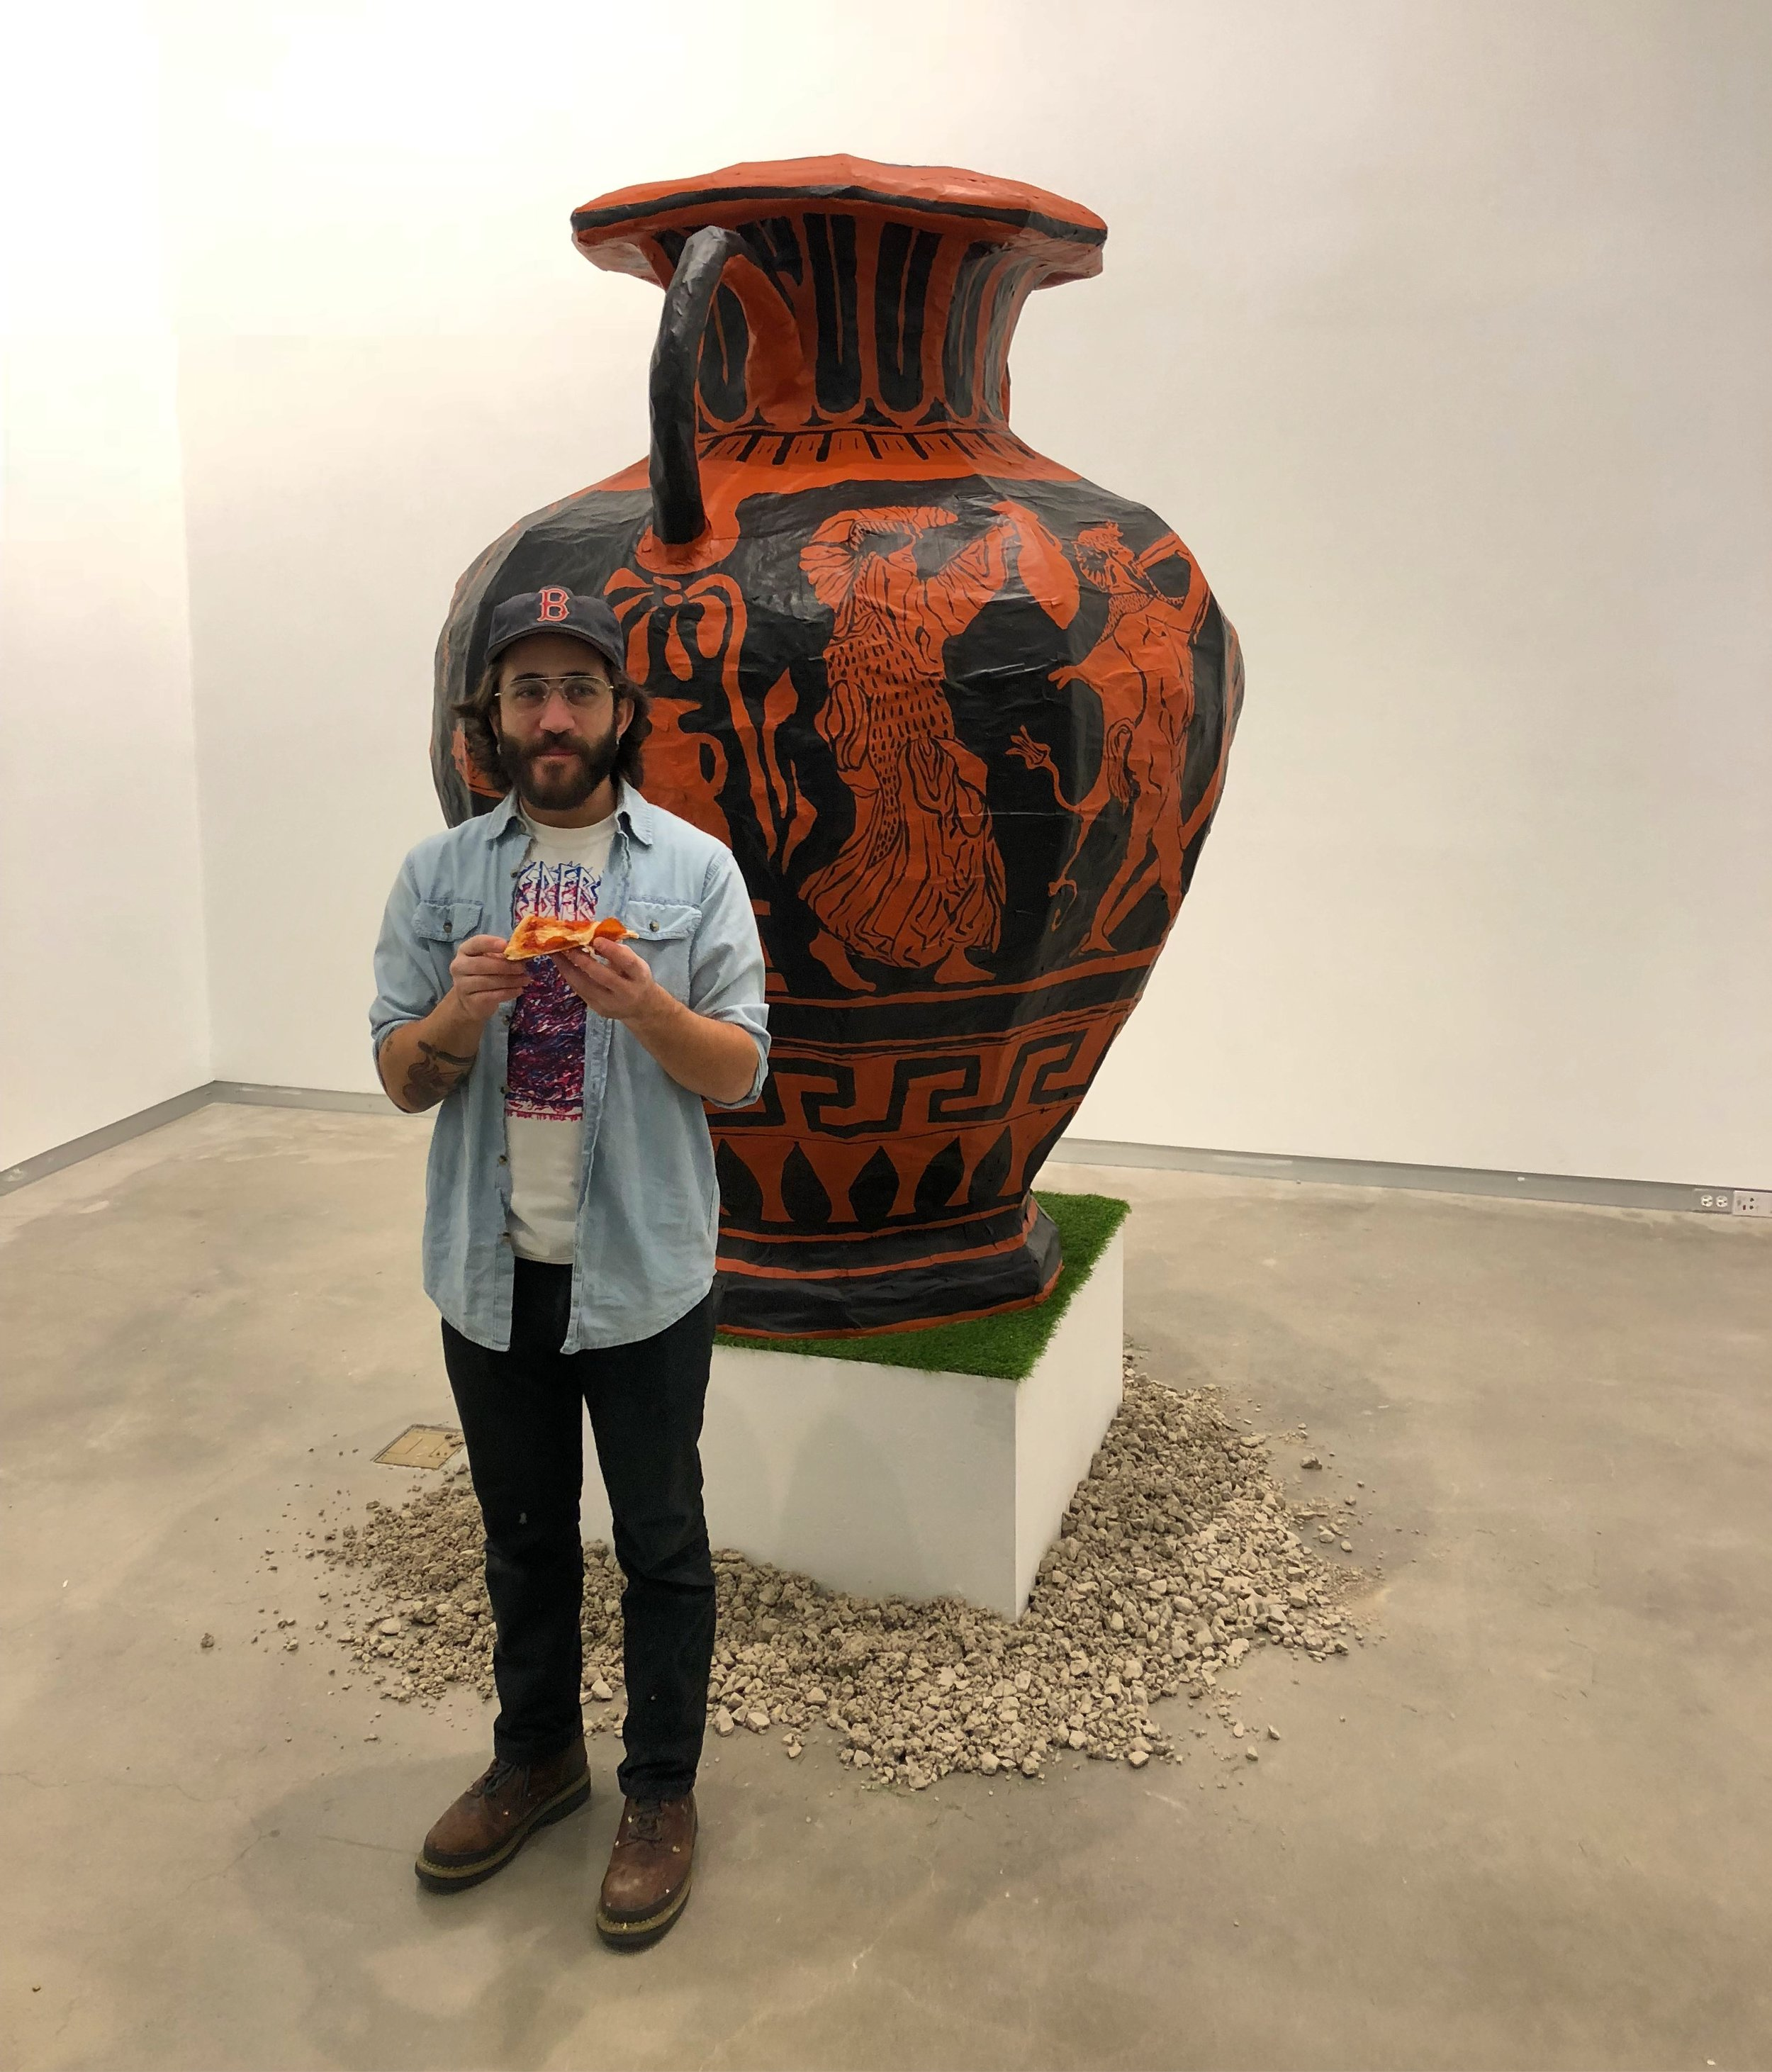 David with Amphora & Pizza